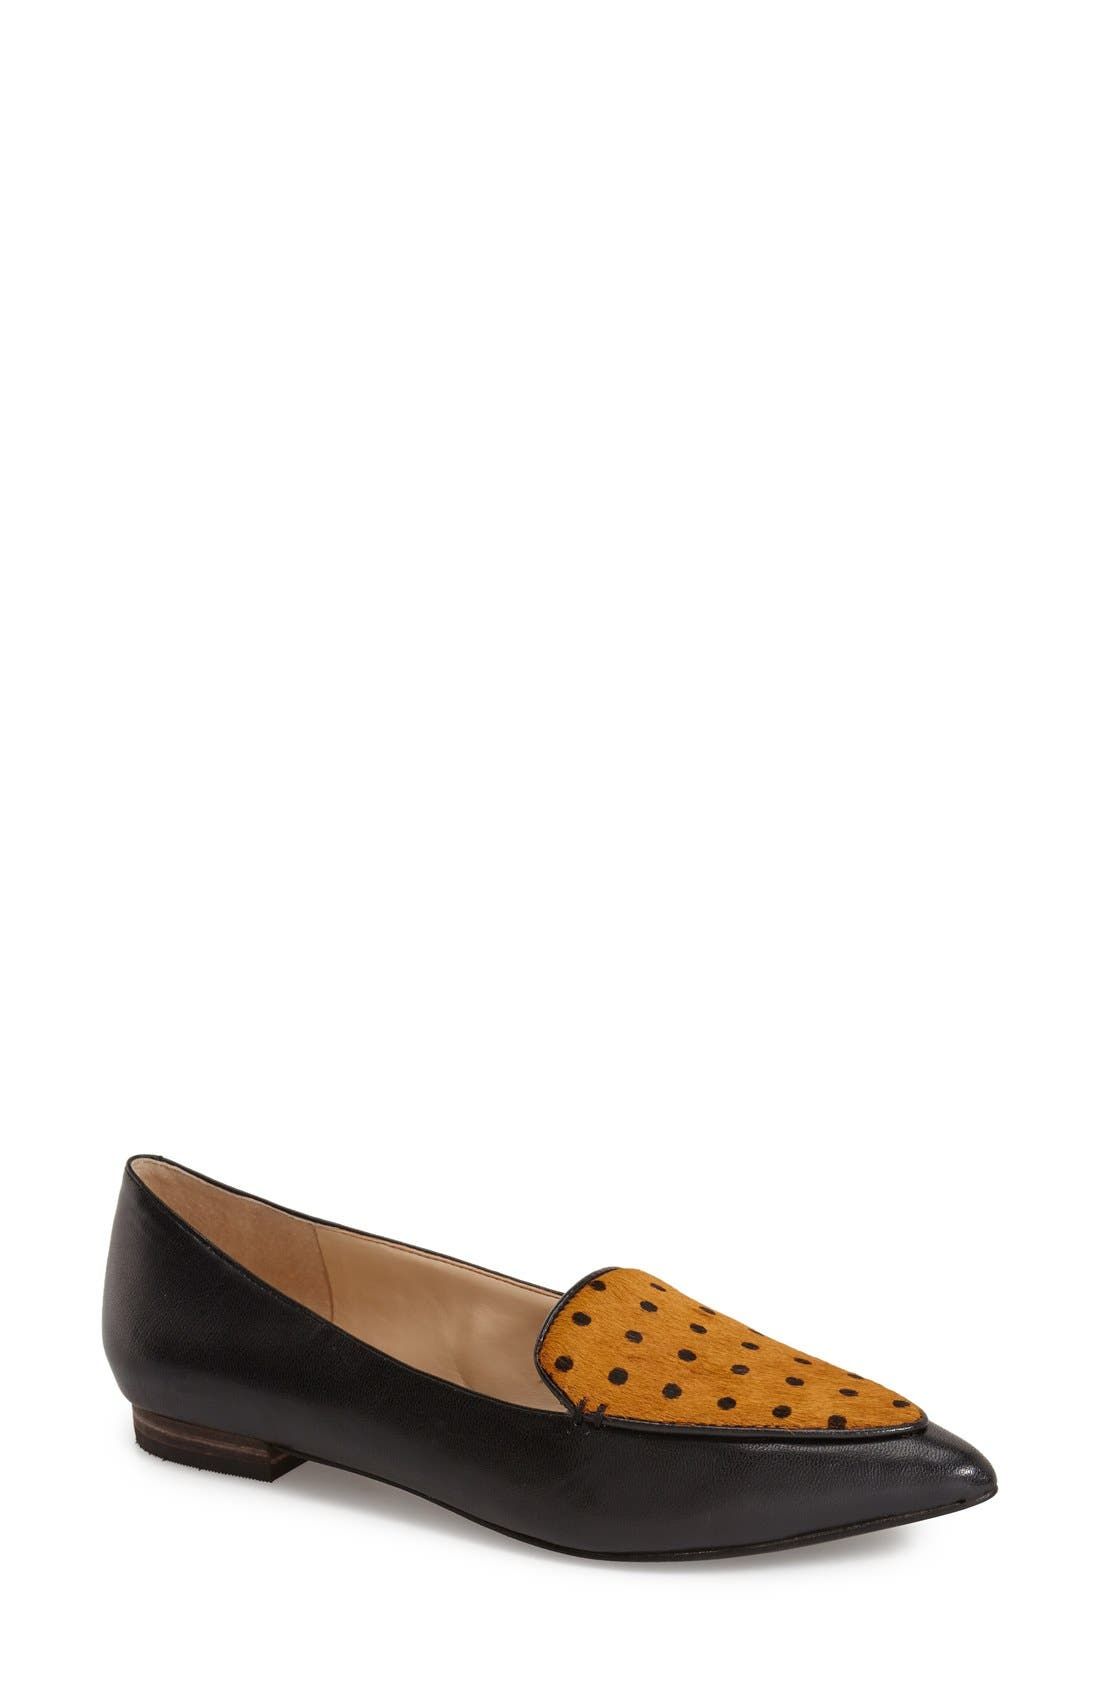 Main Image - Sole Society 'Cammila' Pointy Toe Loafer (Women)